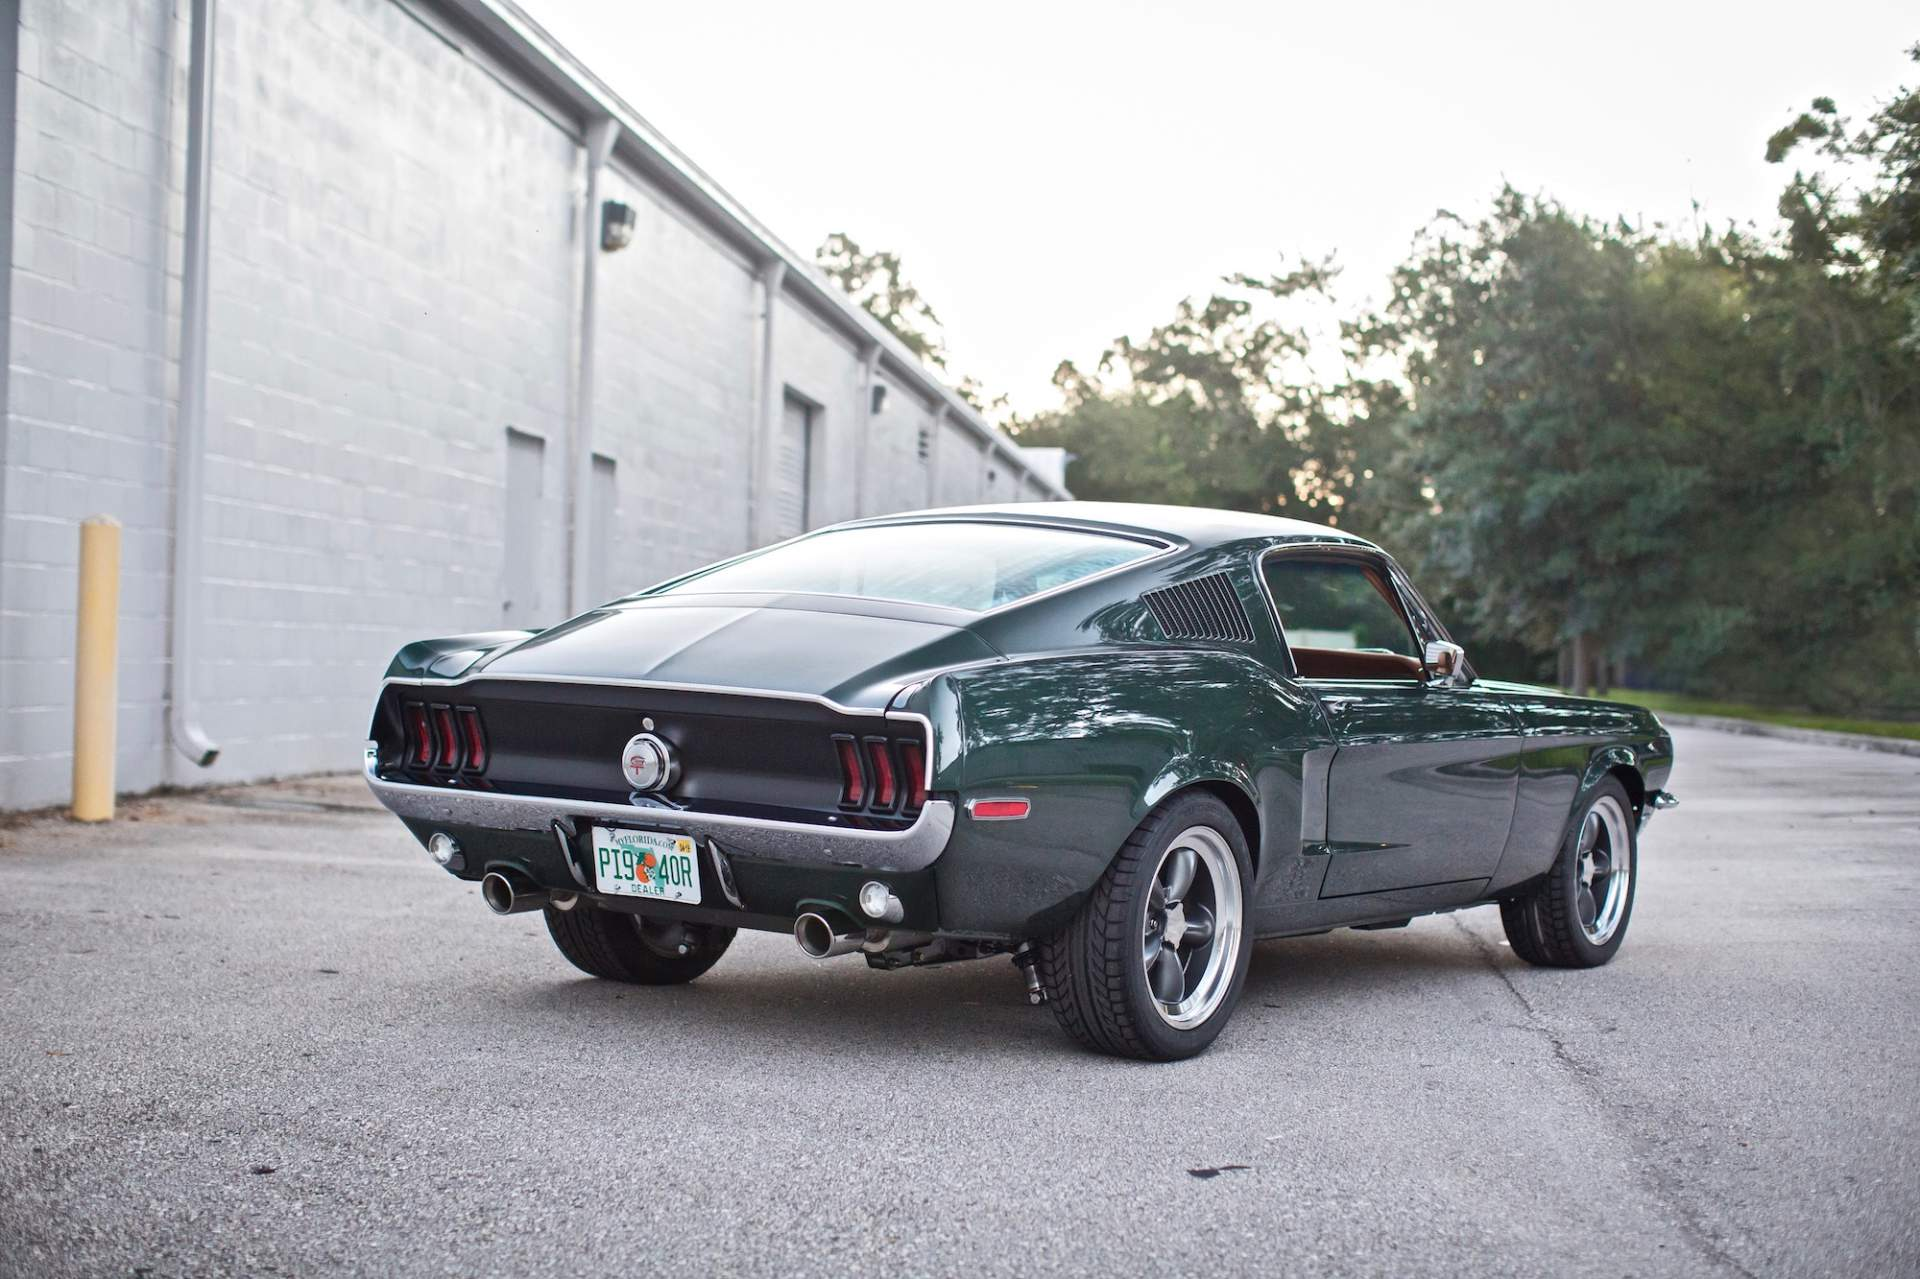 1968_Ford_Mustang_Fastback_by_Revology_0002